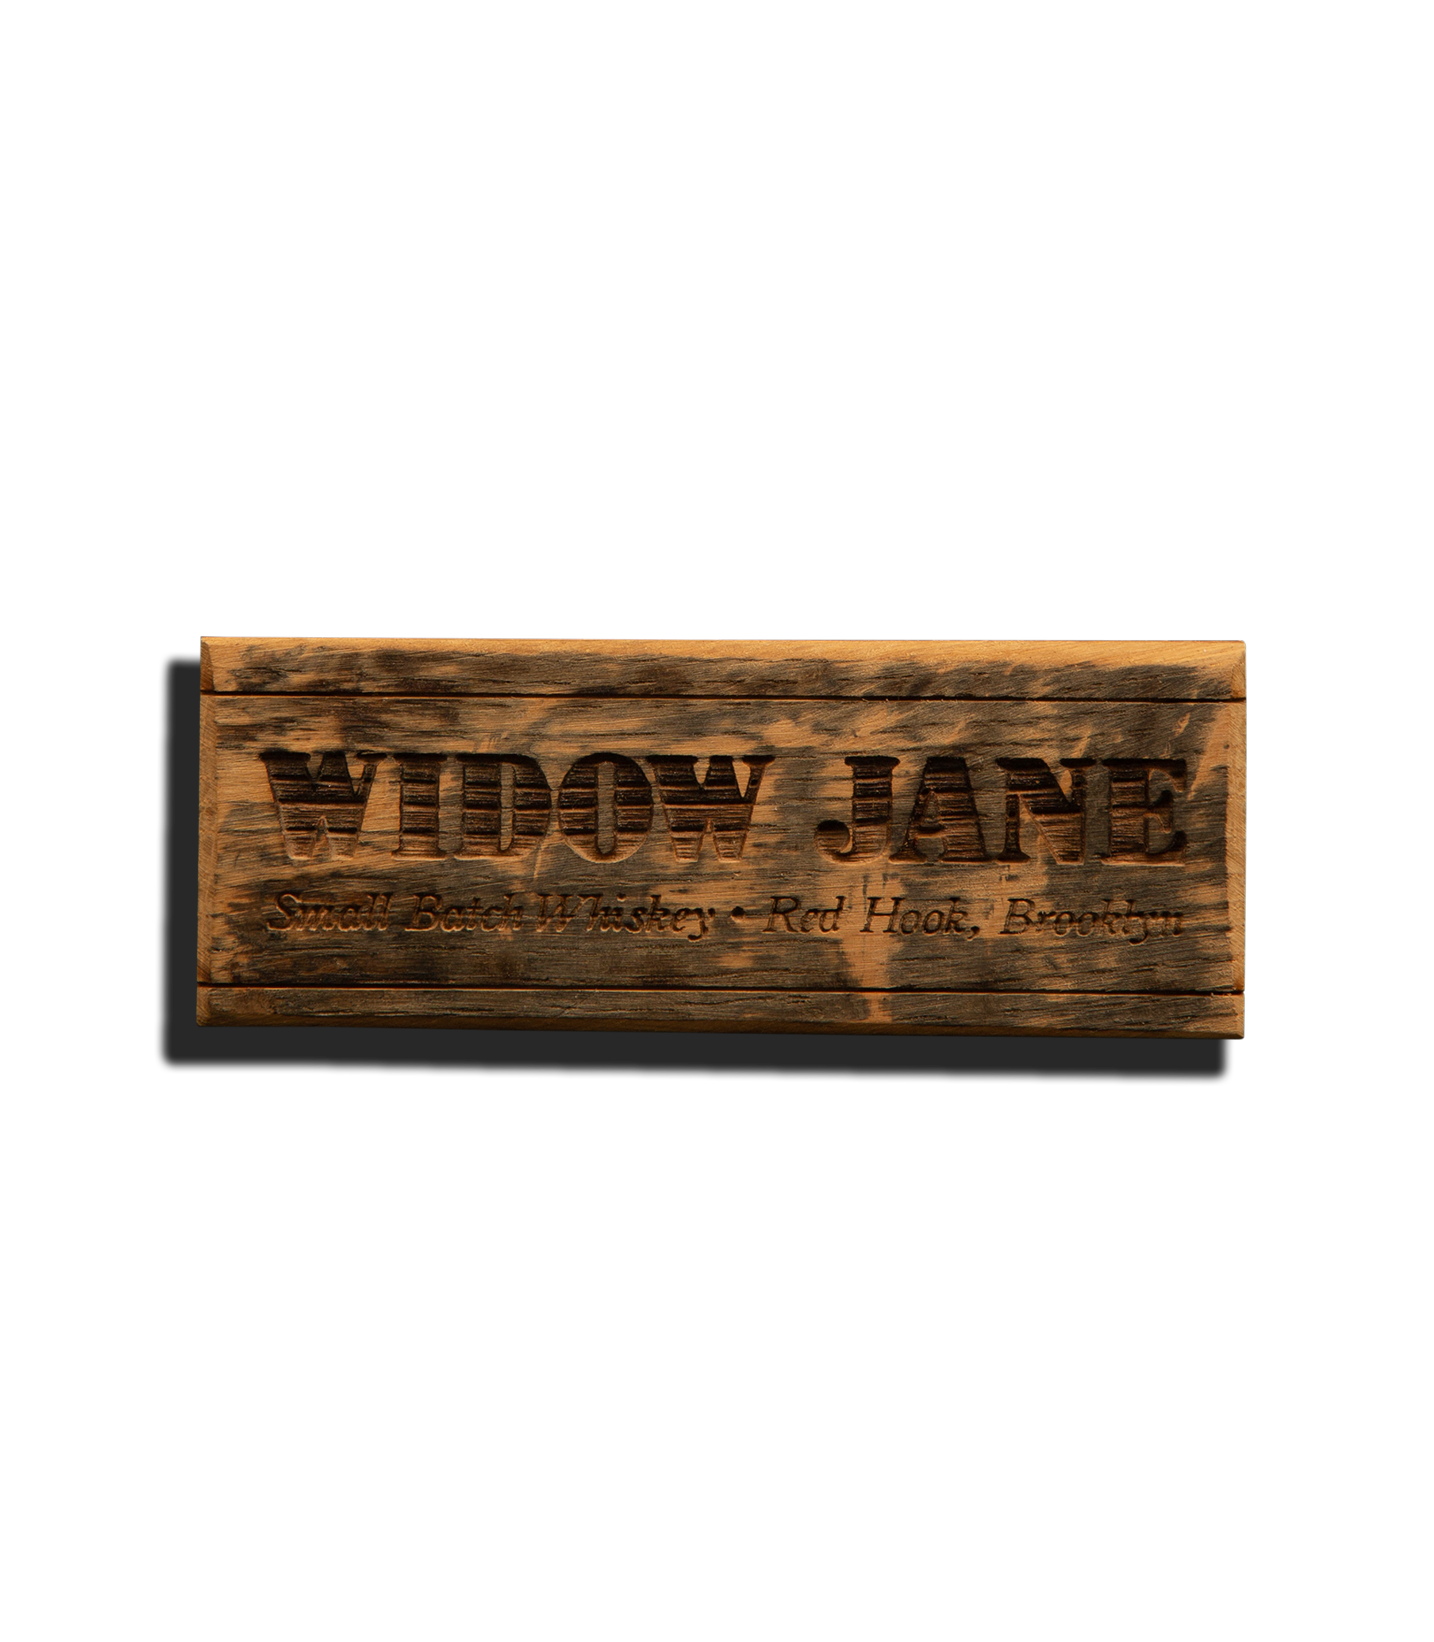 Widow Jane Magnet product shot